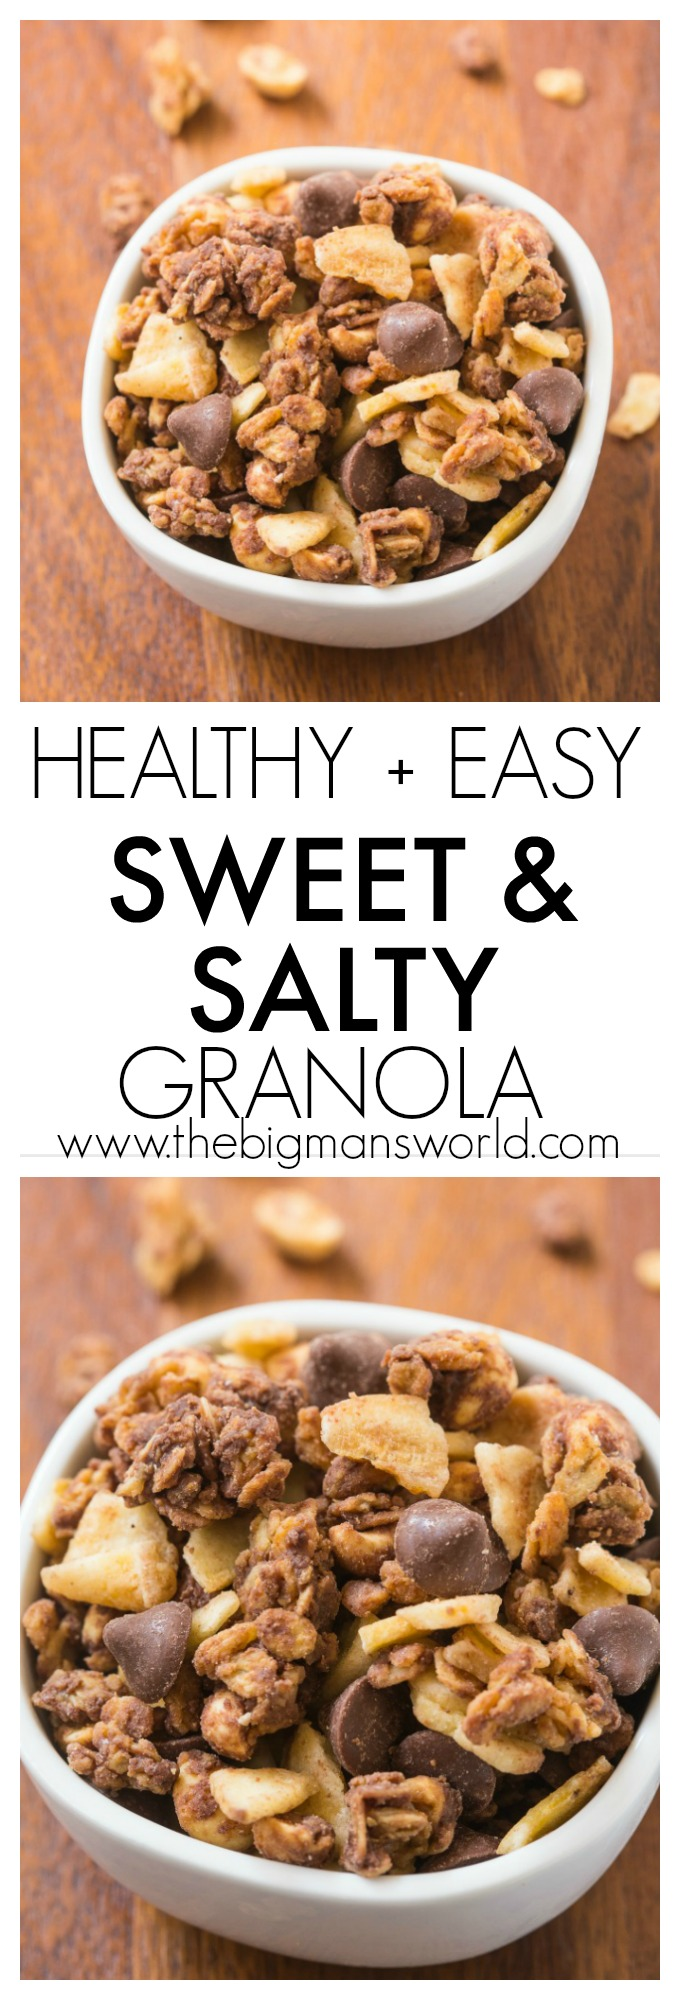 Sweet and Salty Trail Mix Granola - the perfect hiking snack for your kids! www.superhealthykids.com